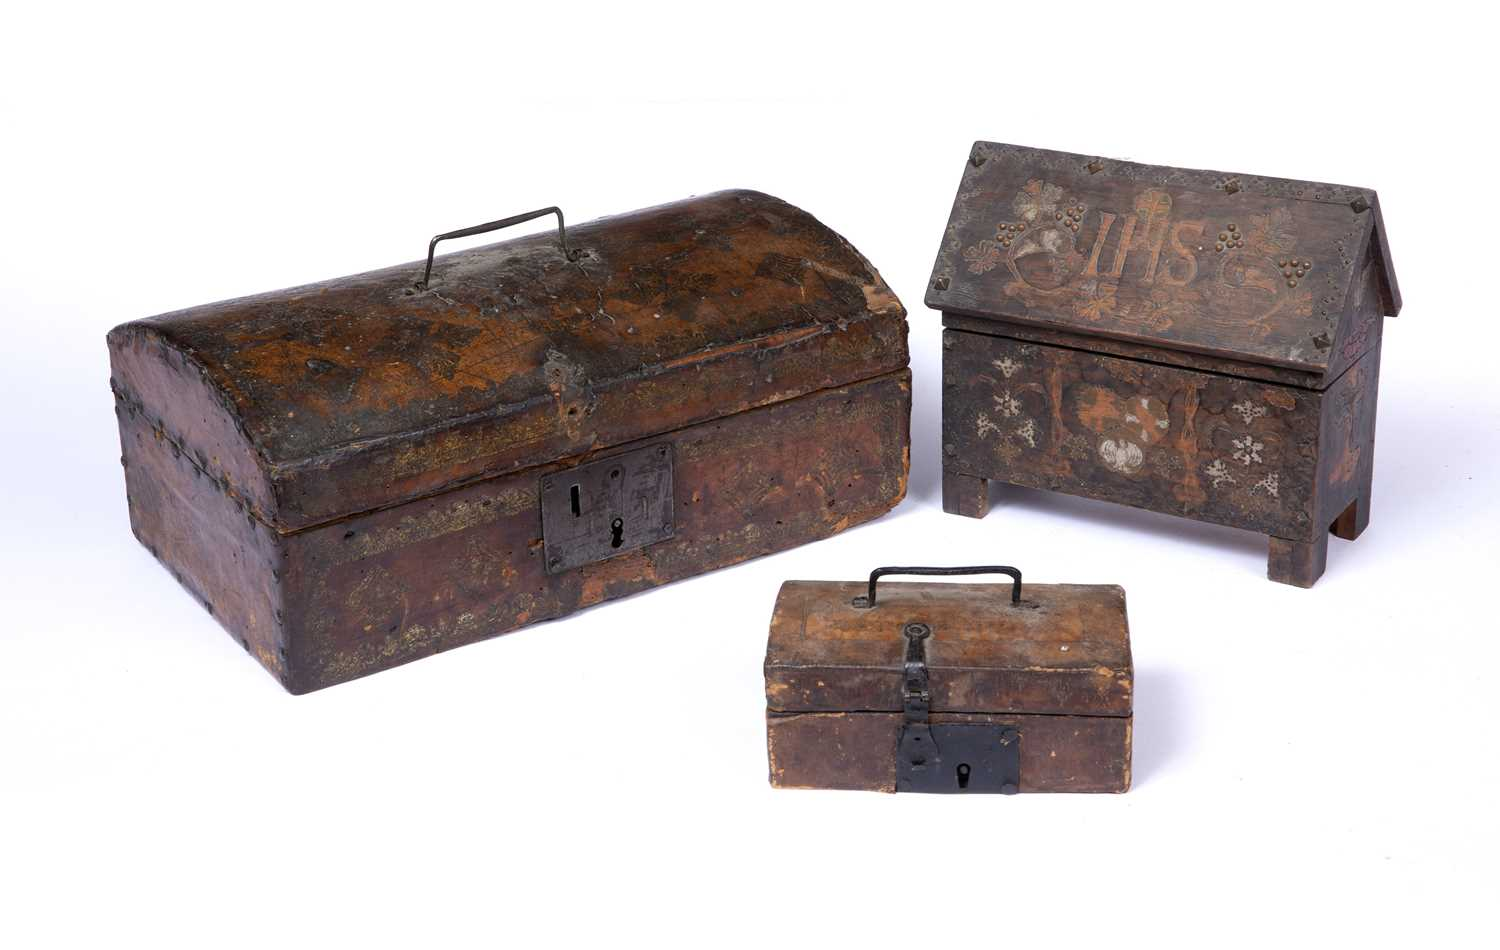 An 18th century leather covered domed top casket, 35cm wide containing a collection of candles, a - Image 2 of 4